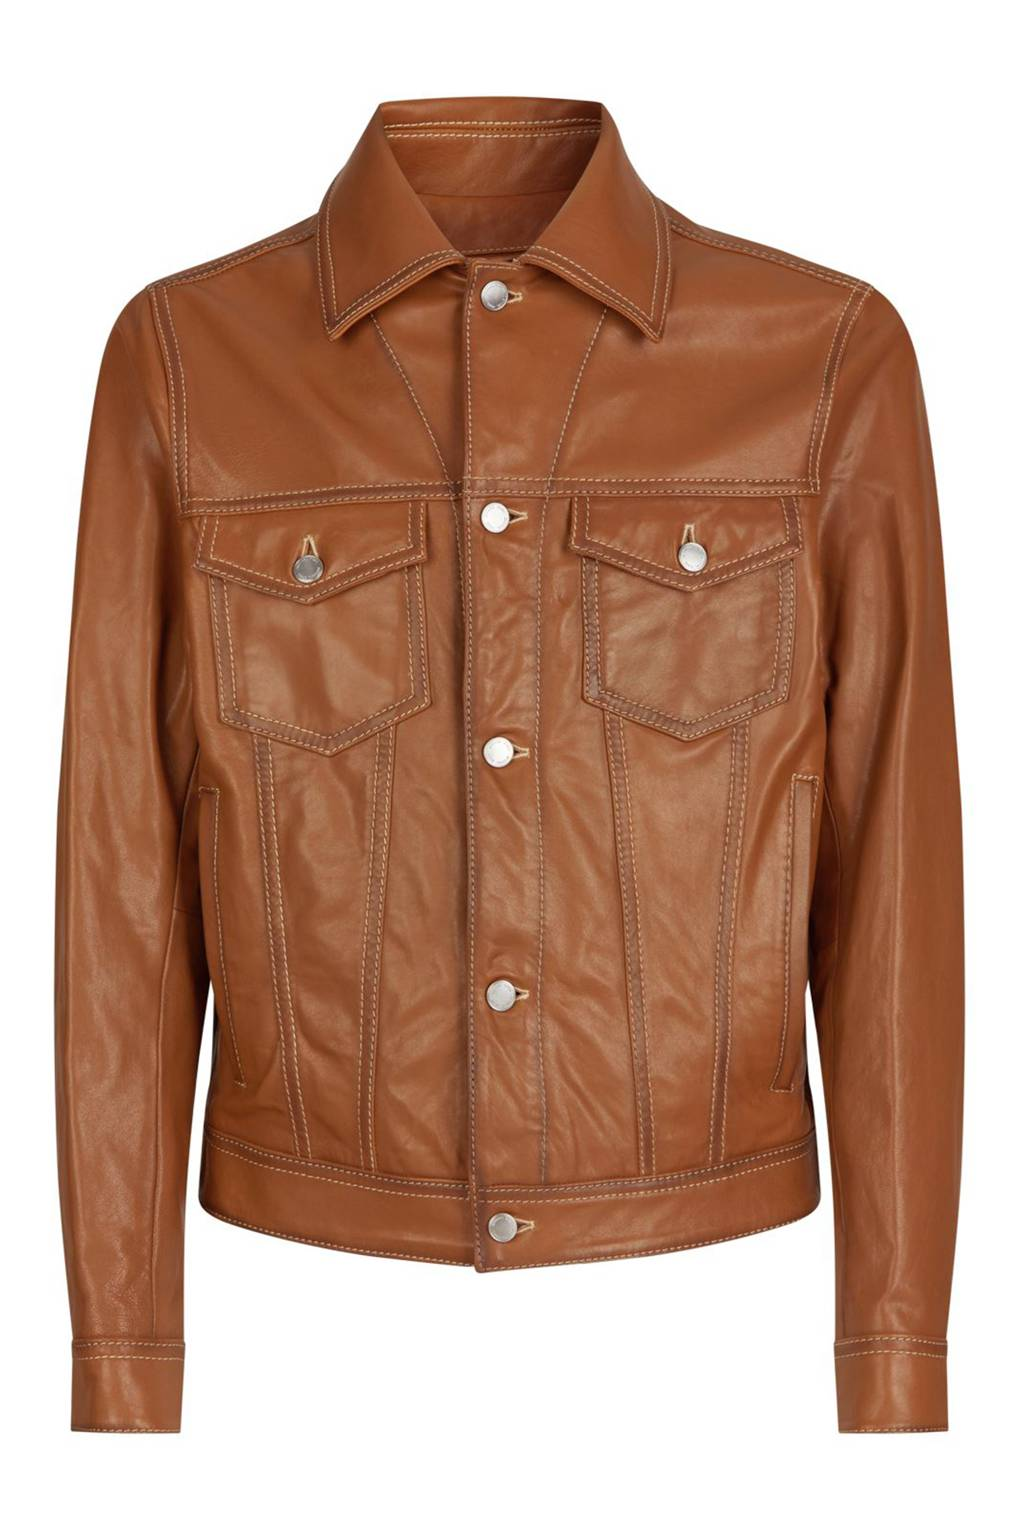 04ba78f1f1 Men's leather jackets: how to look good in leather | British GQ